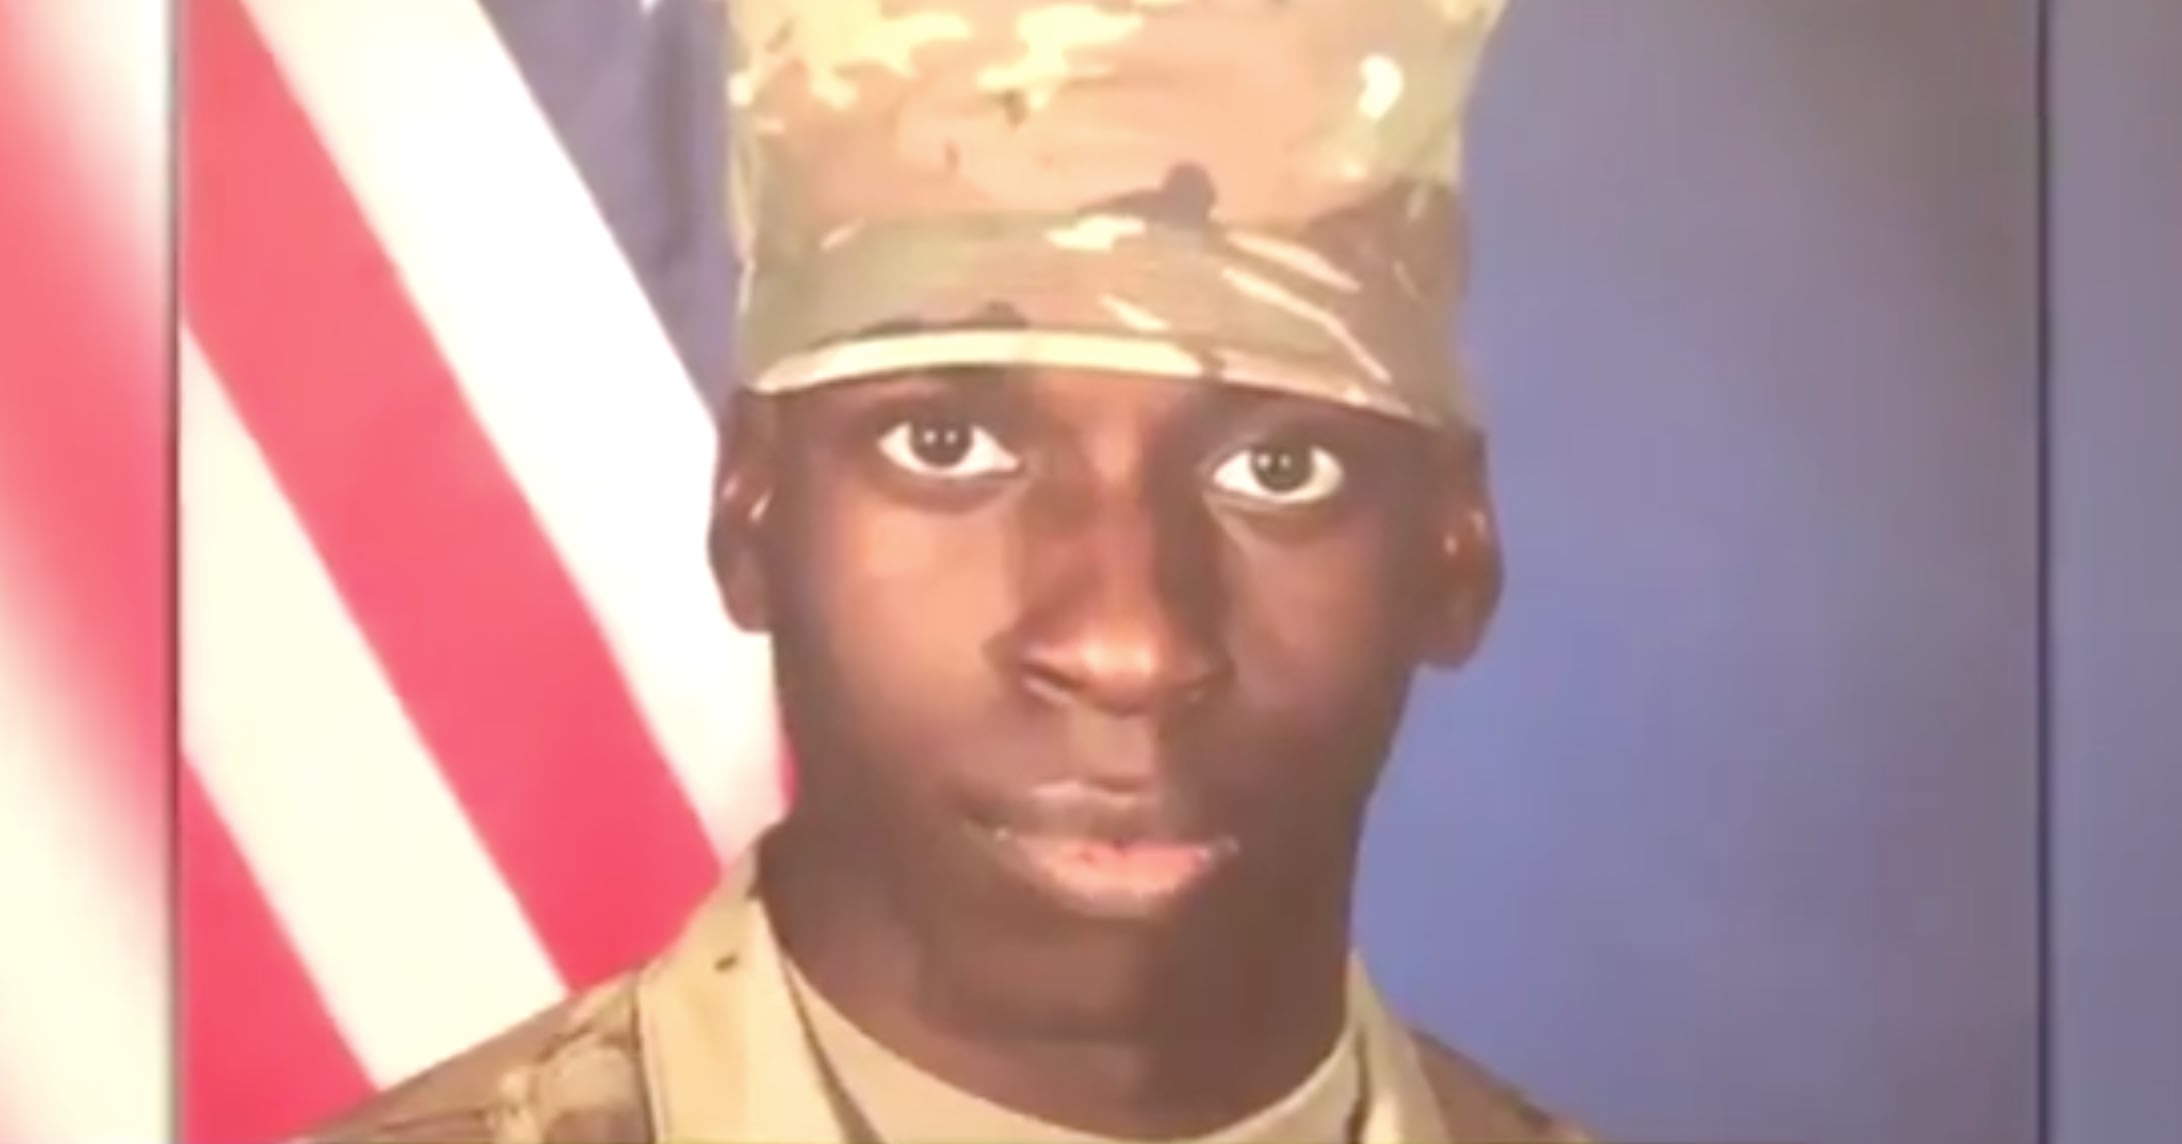 Officer Involved In Shooting Death Of Black Man In Alabama Mall On Thanksgiving Night To Face No Charges